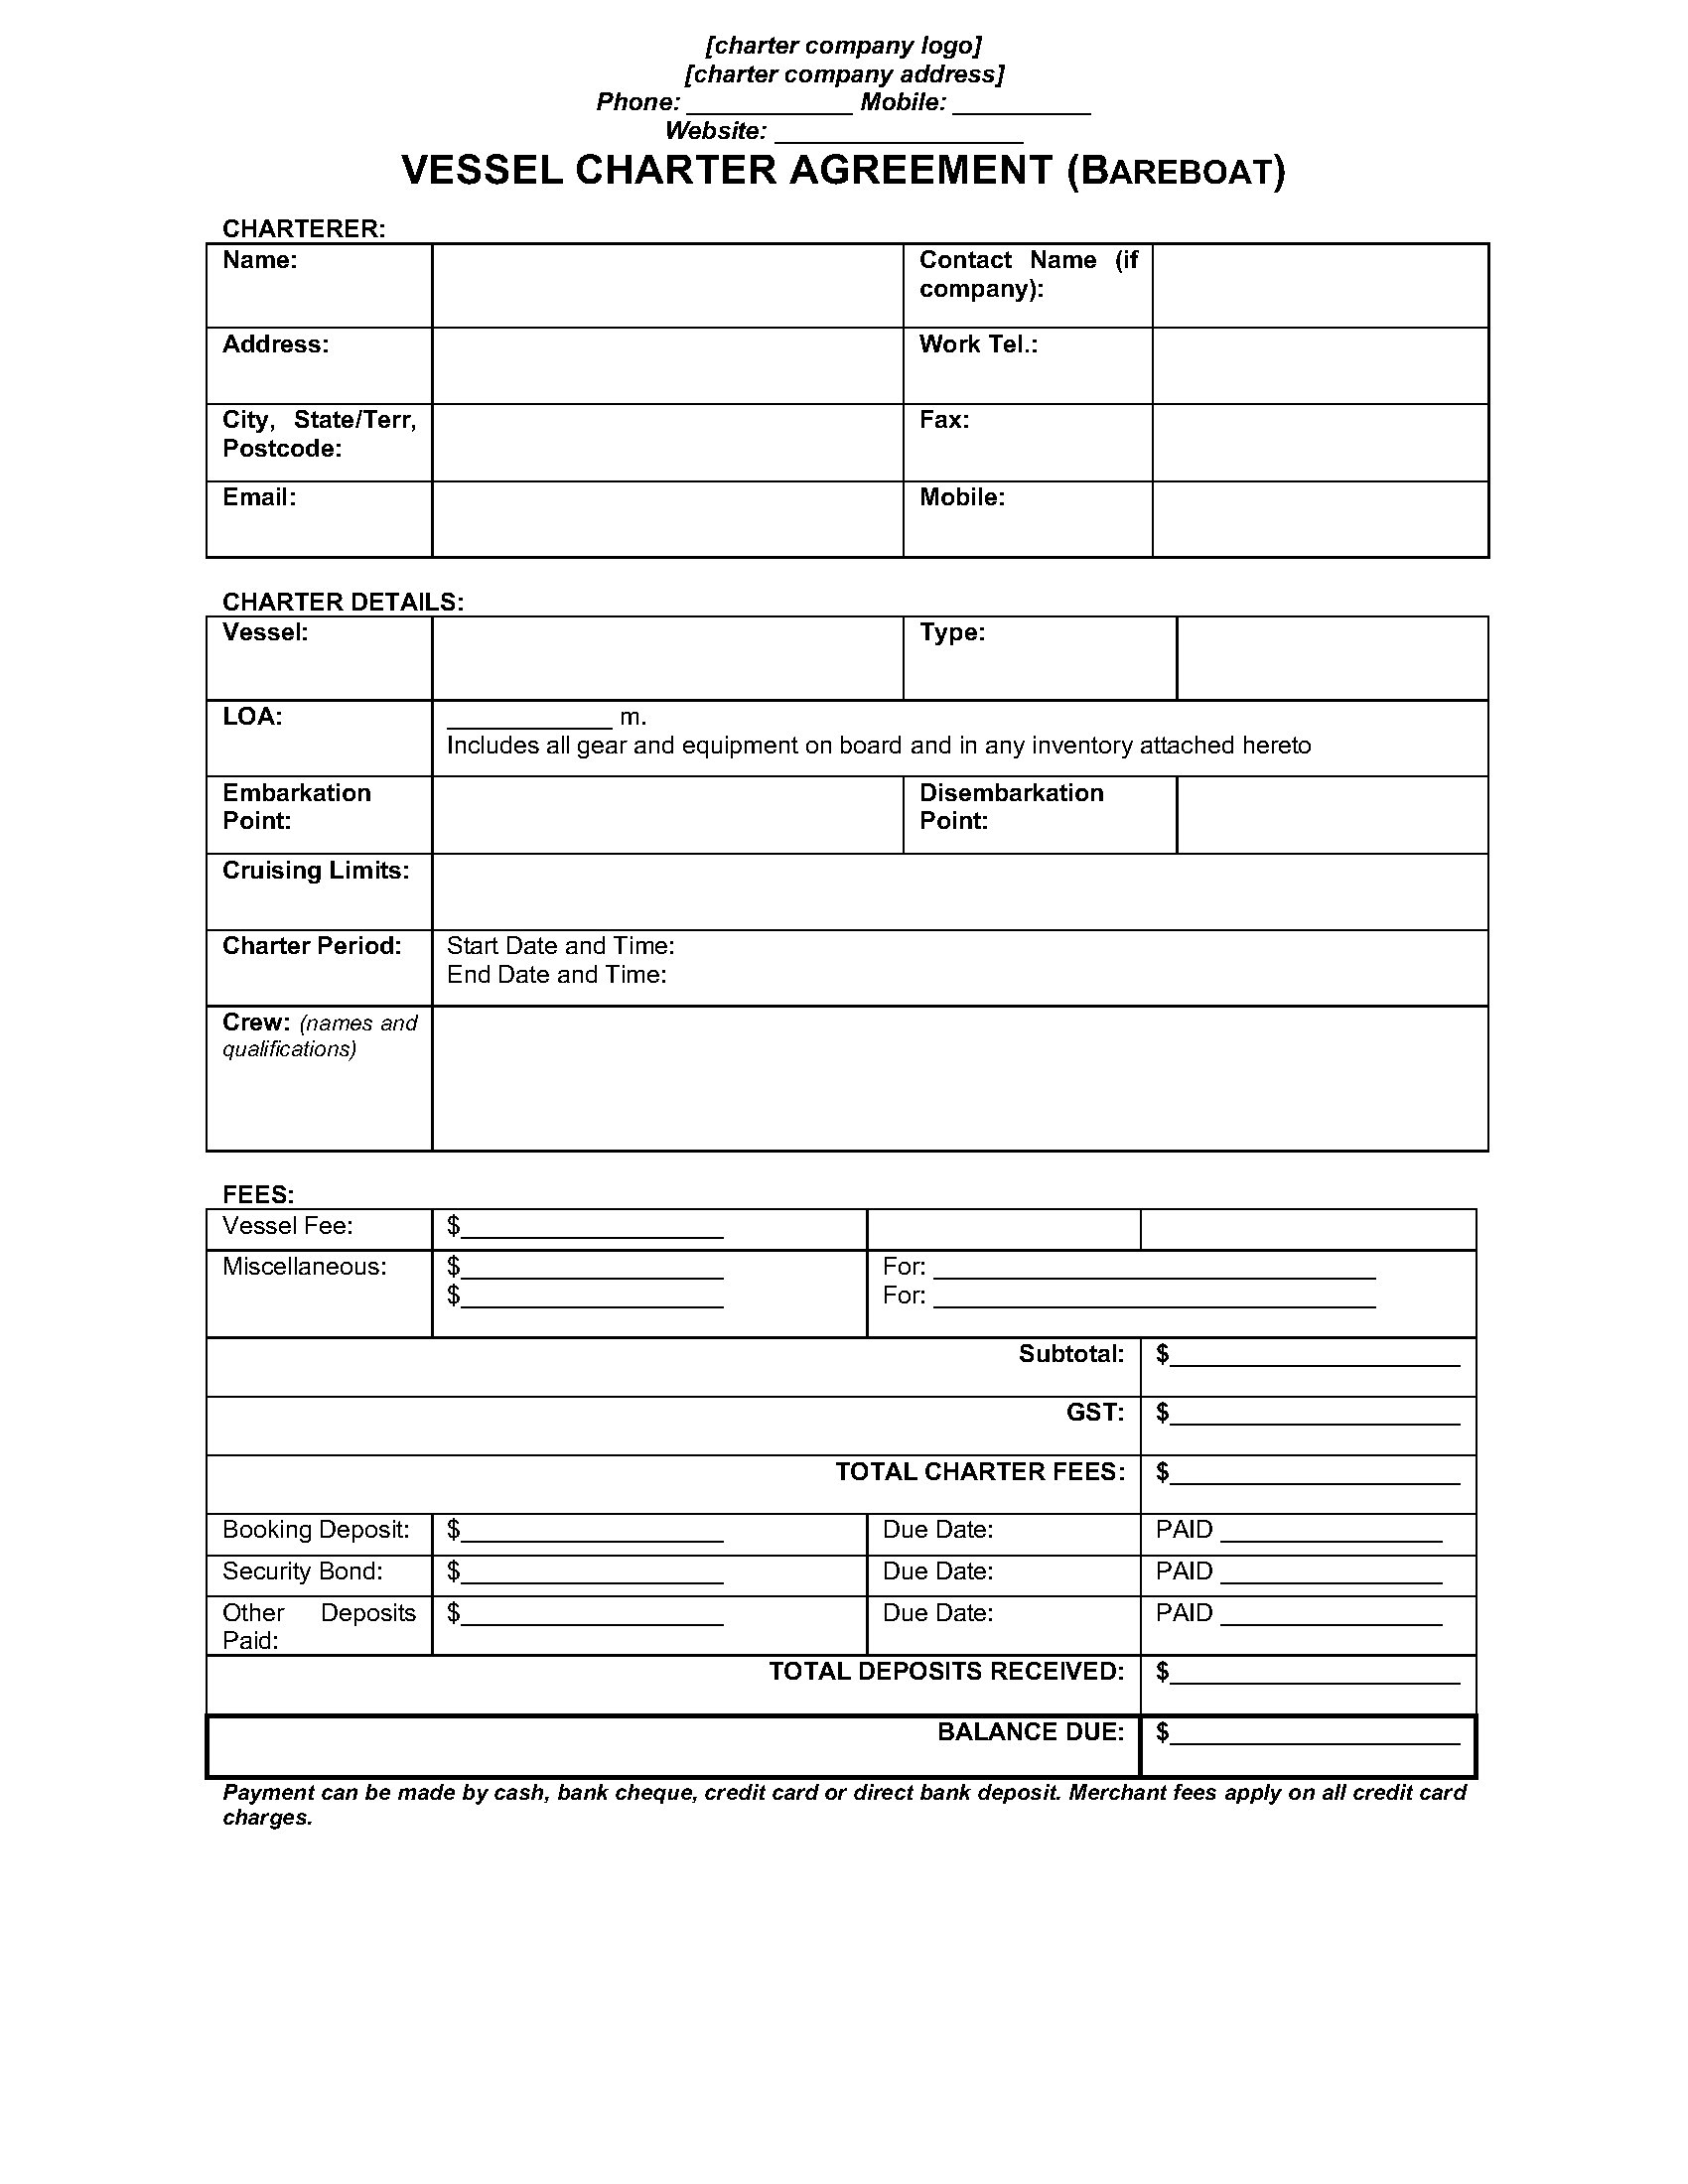 Australia Bareboat Vessel Charter Agreement Legal Forms And